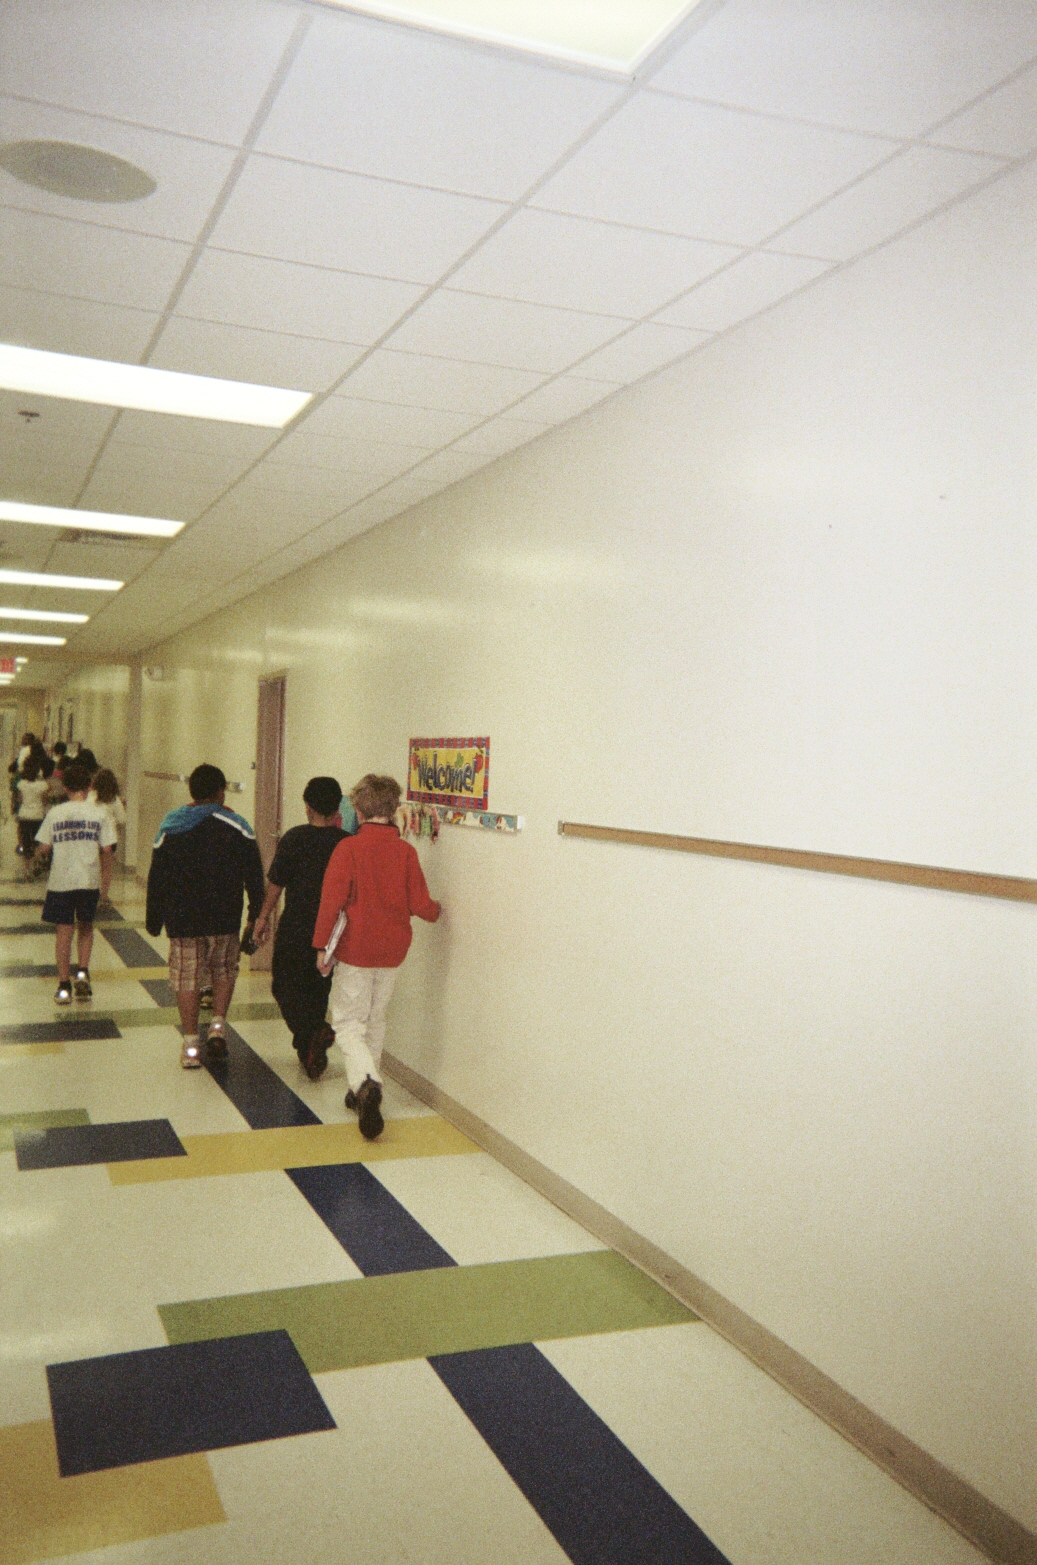 Foyer Hallway Questions : Attention getting questions agqs to help kids focus